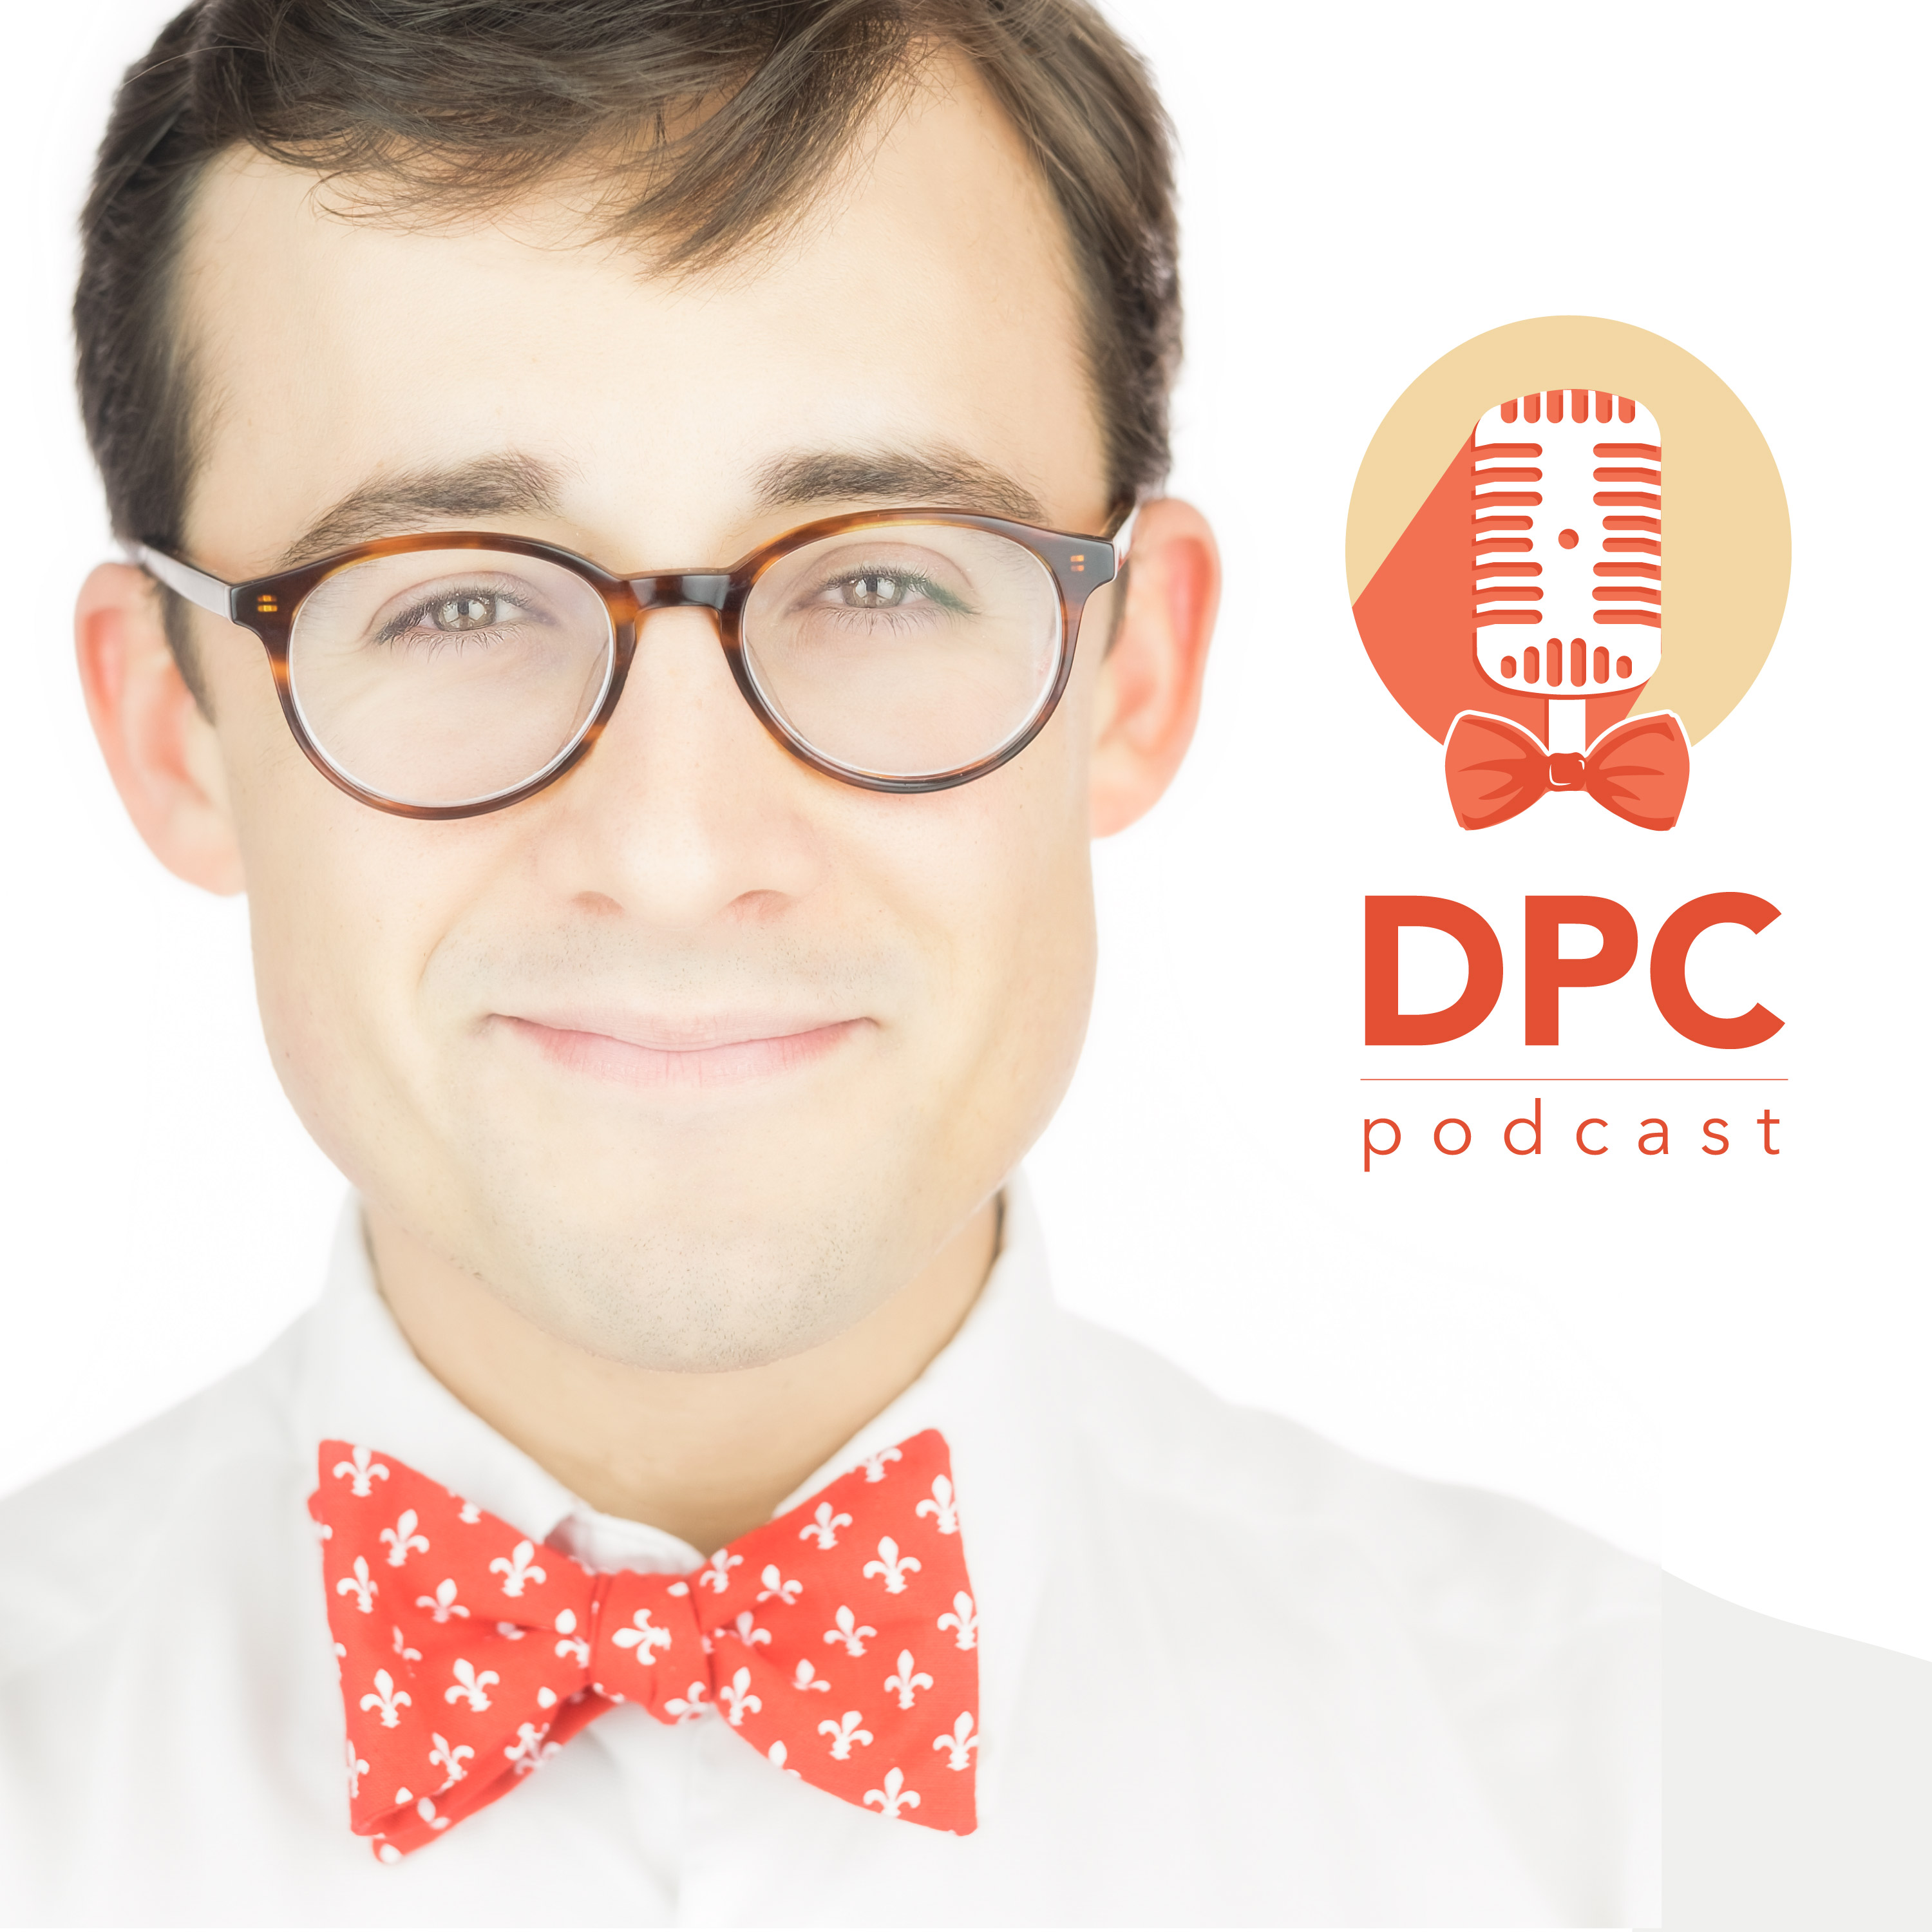 The Direct Primary Care Podcast Show show art